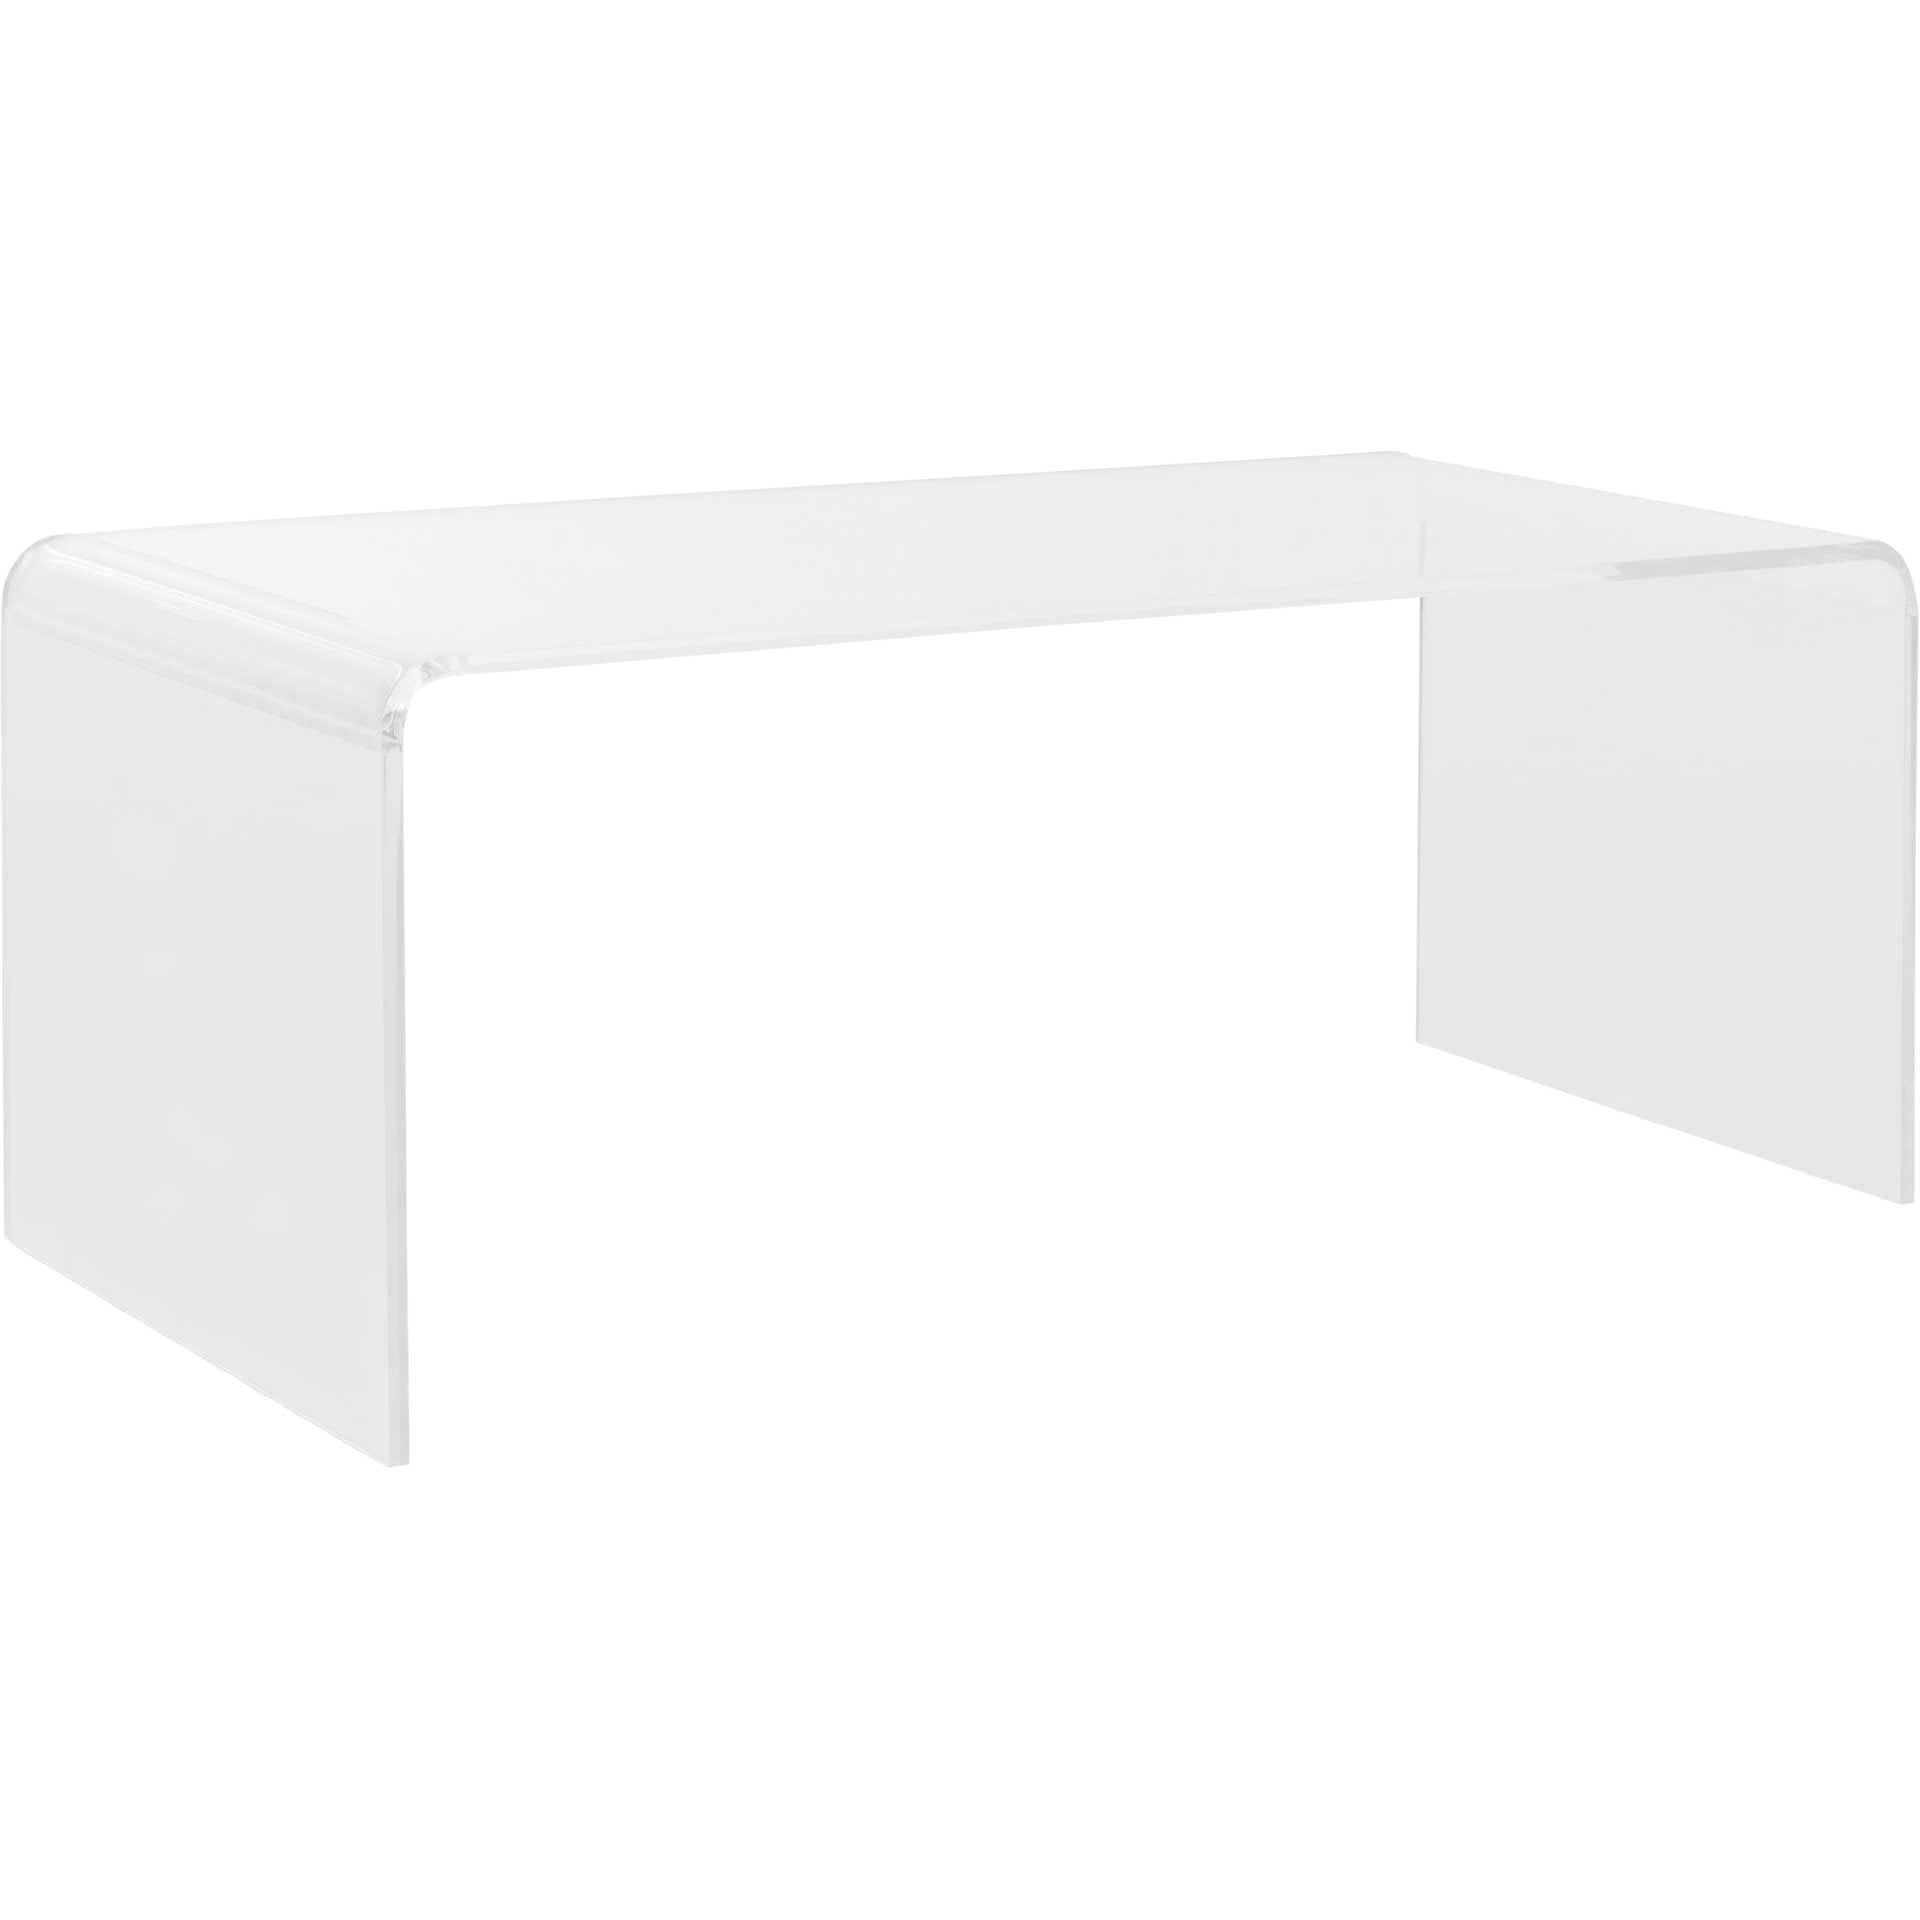 Atticus Acrylic Coffee Table